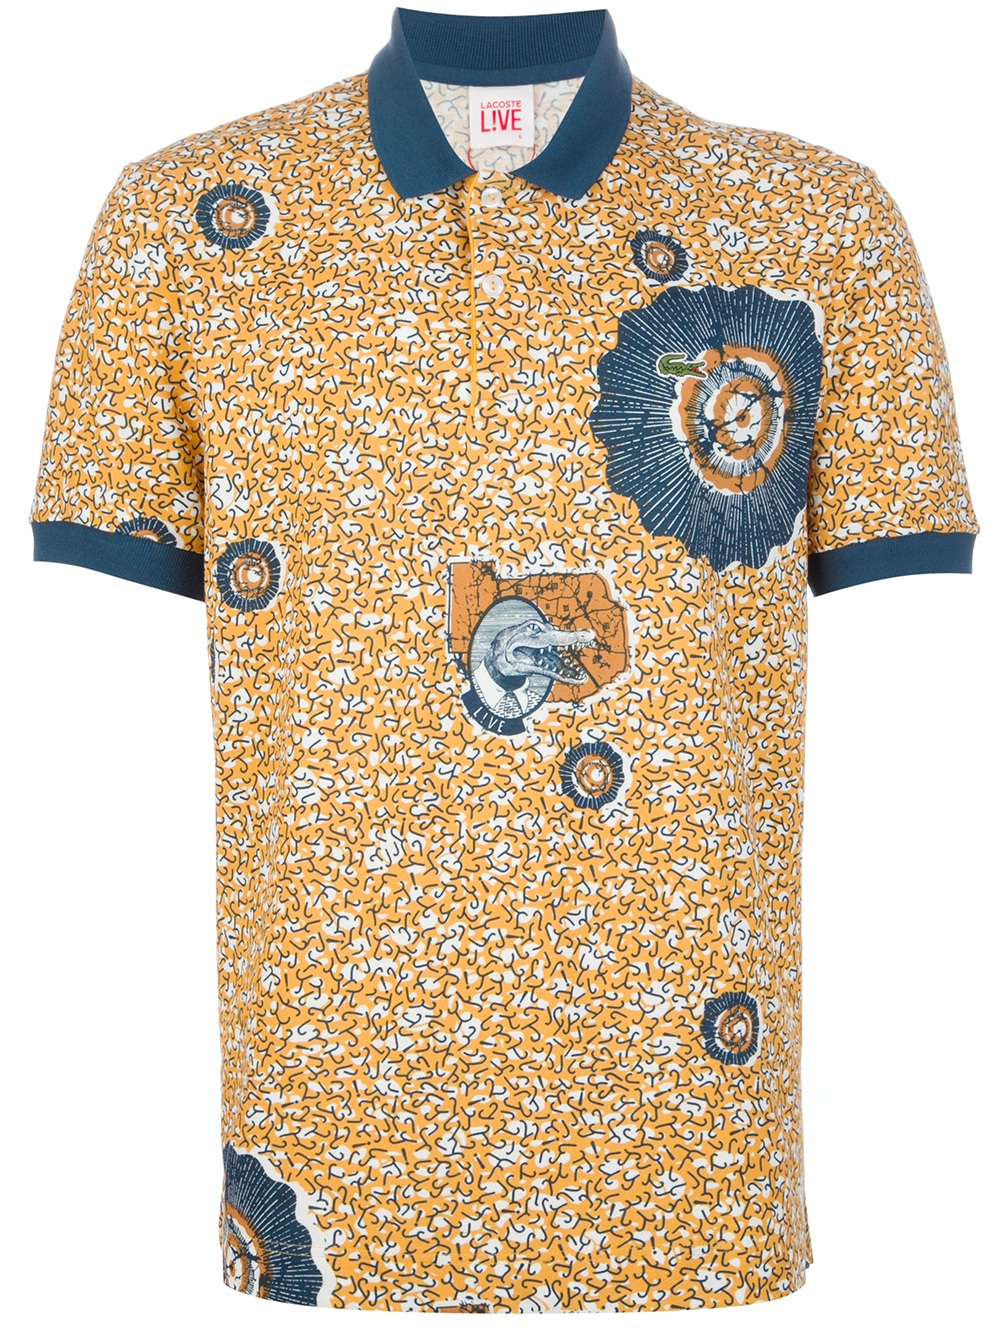 Polo Orange In For Men Fjt1lkc Printed Lacoste Lyst L Ive Shirt c5R4LS3qAj